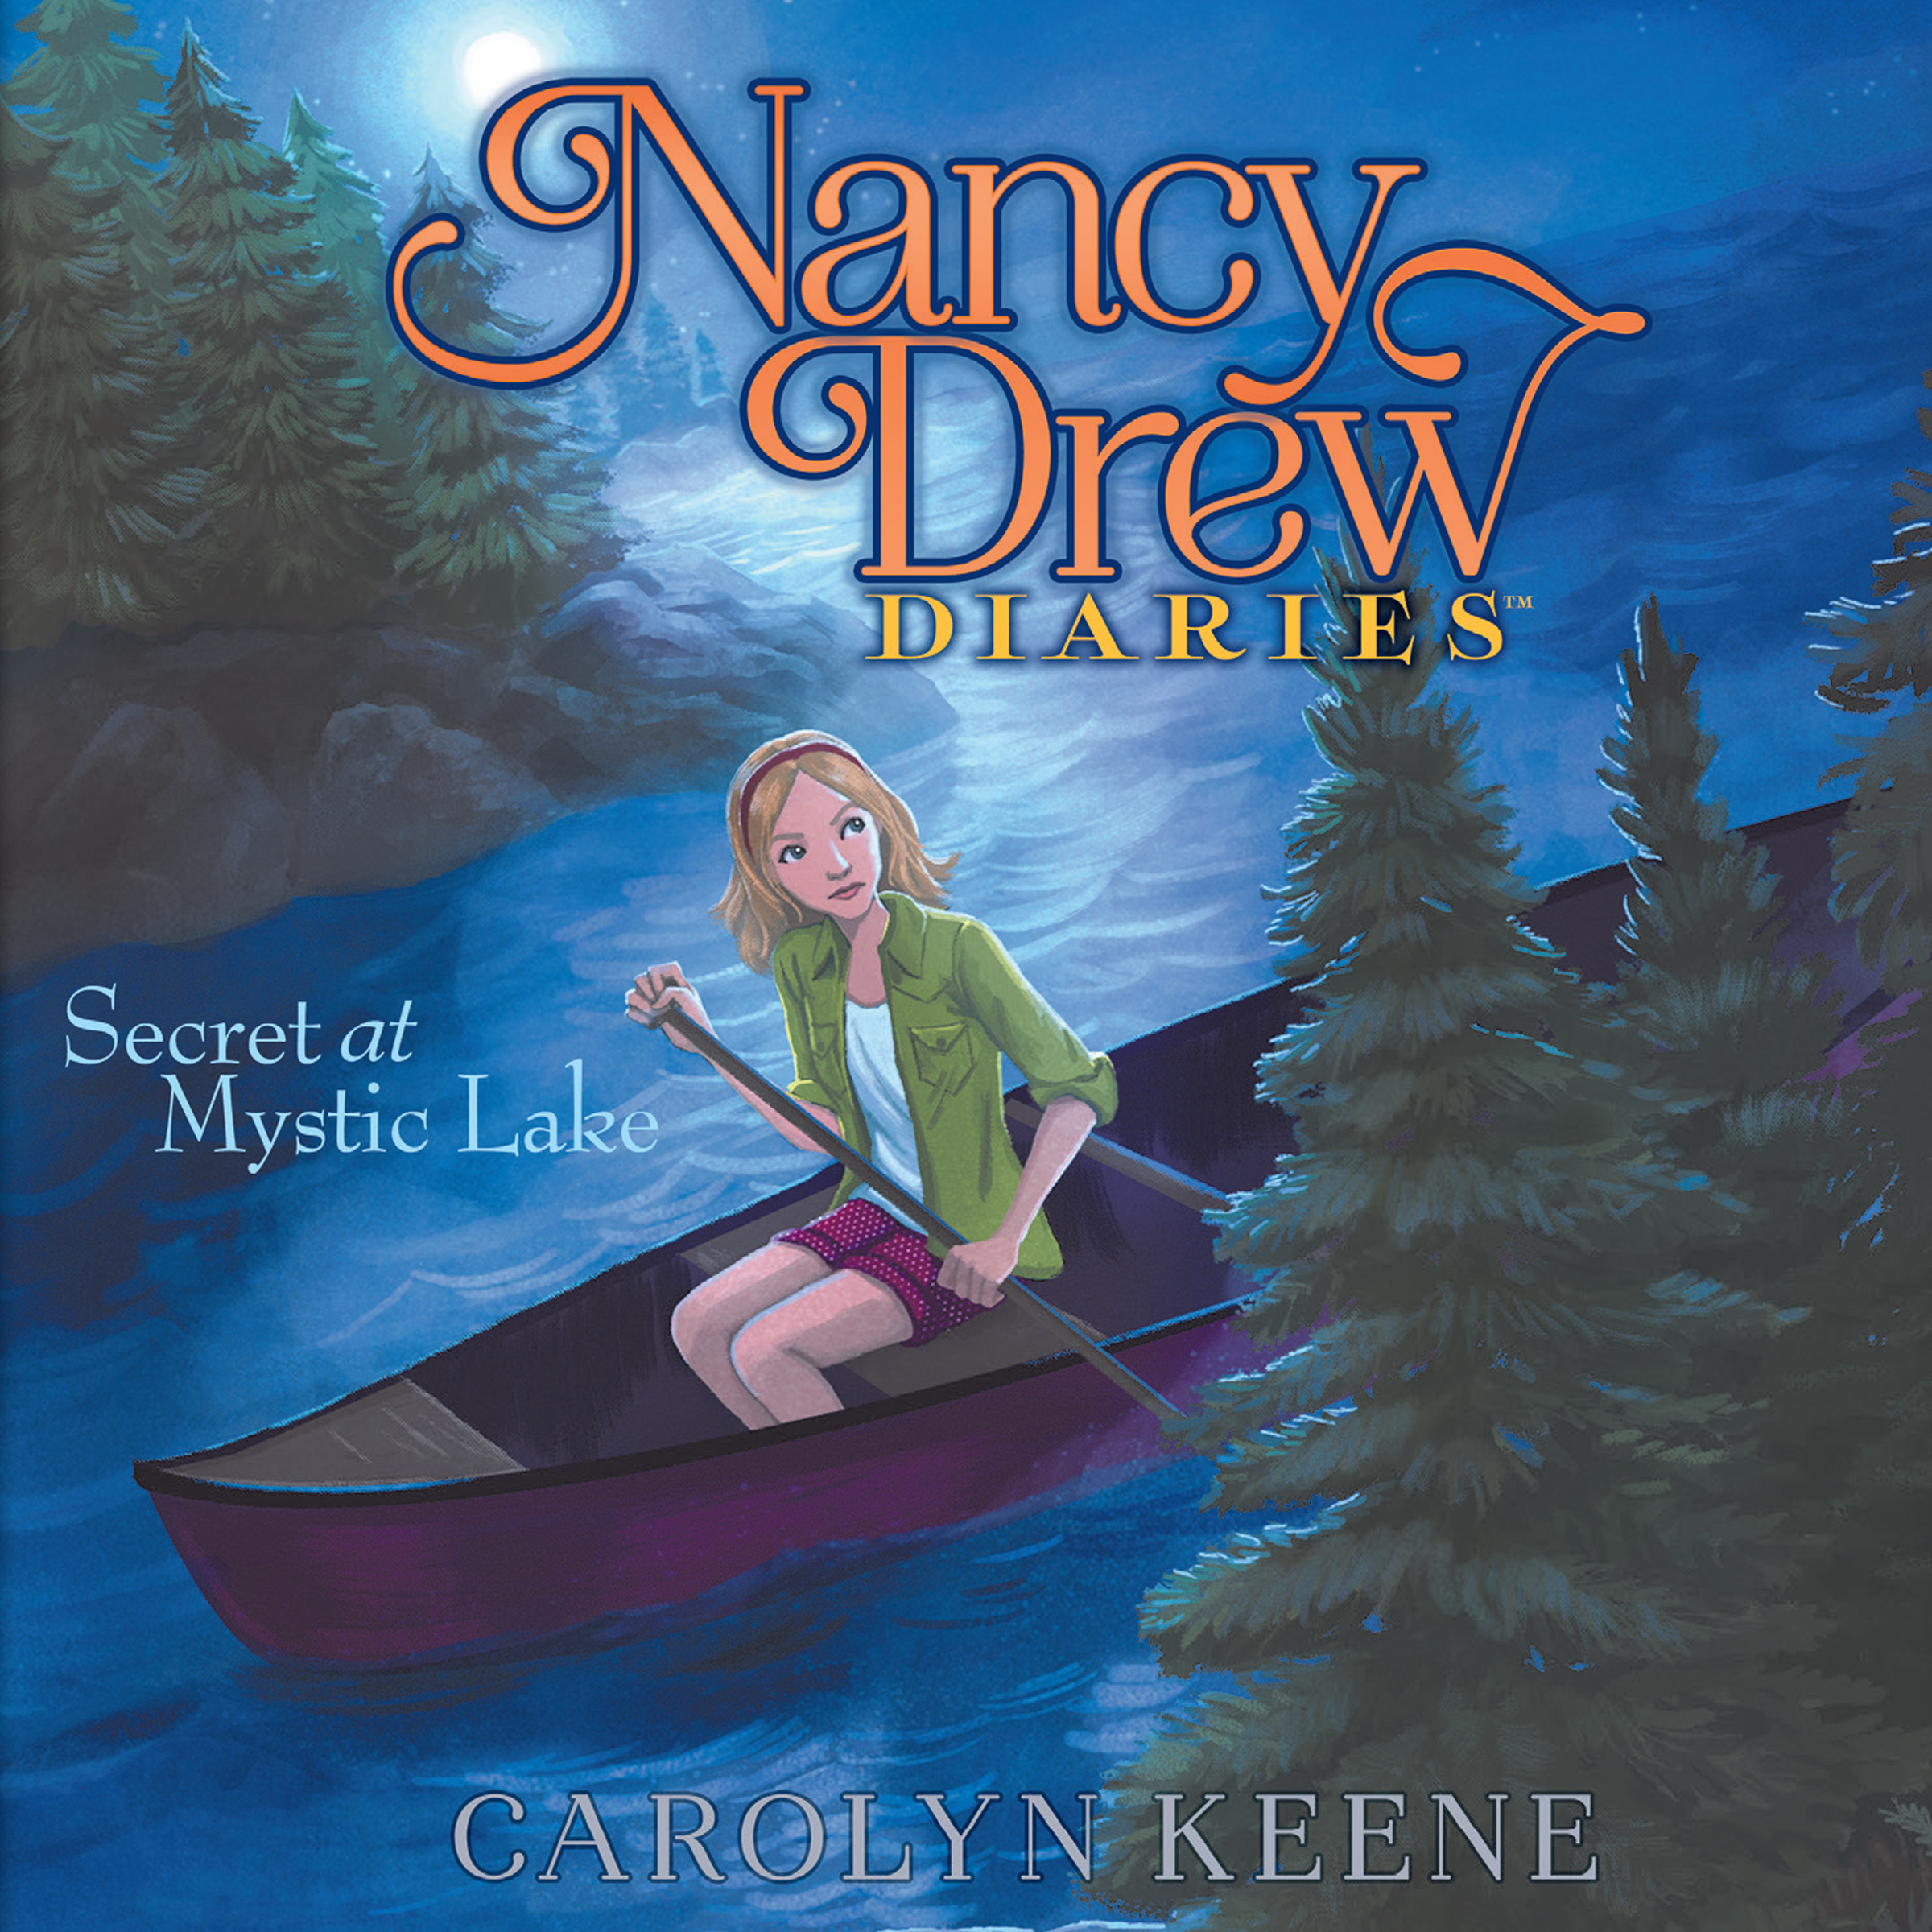 Printable Secret at Mystic Lake Audiobook Cover Art